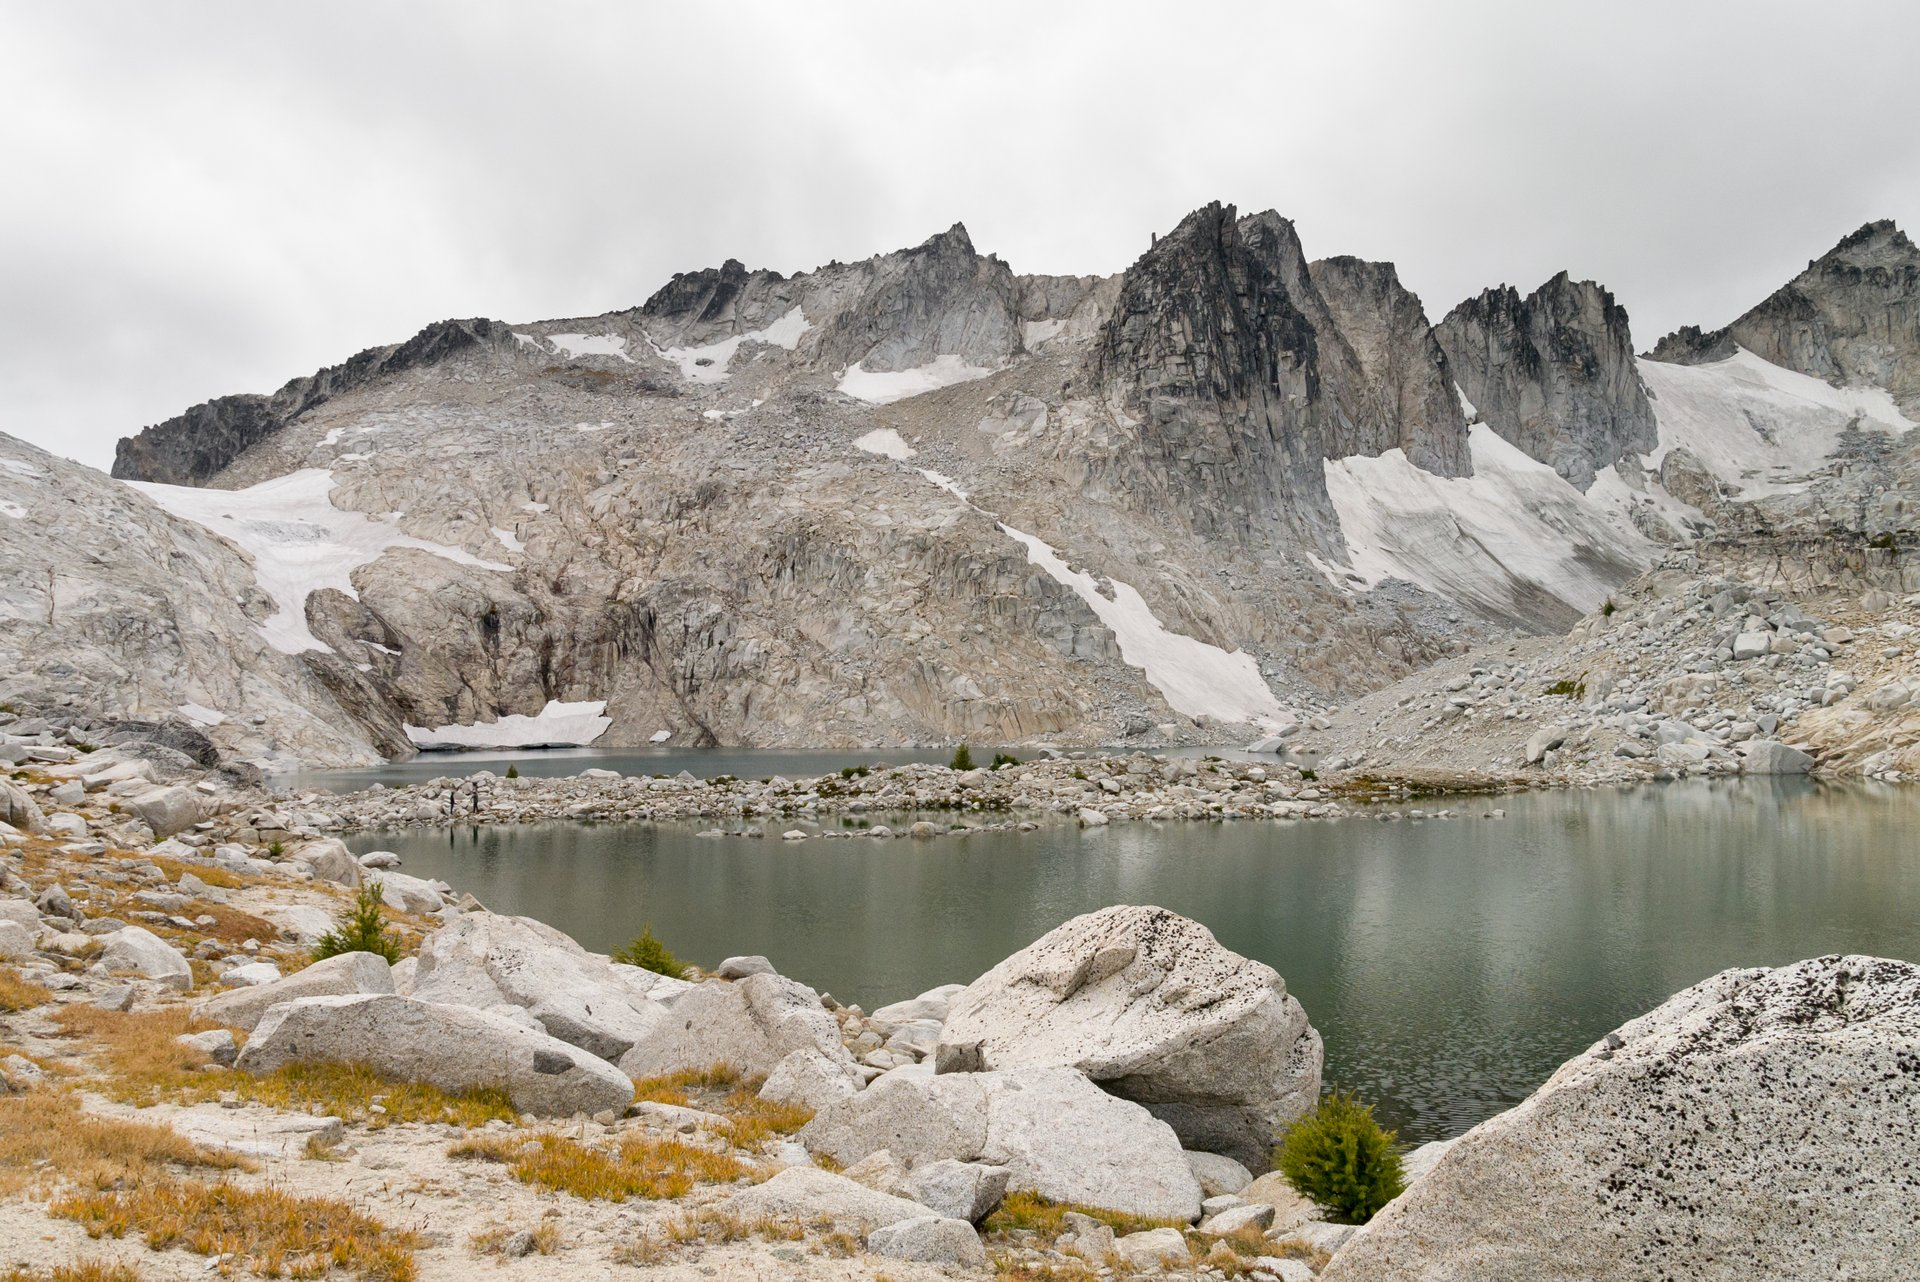 Isolation Lake, Witches Tower 2020